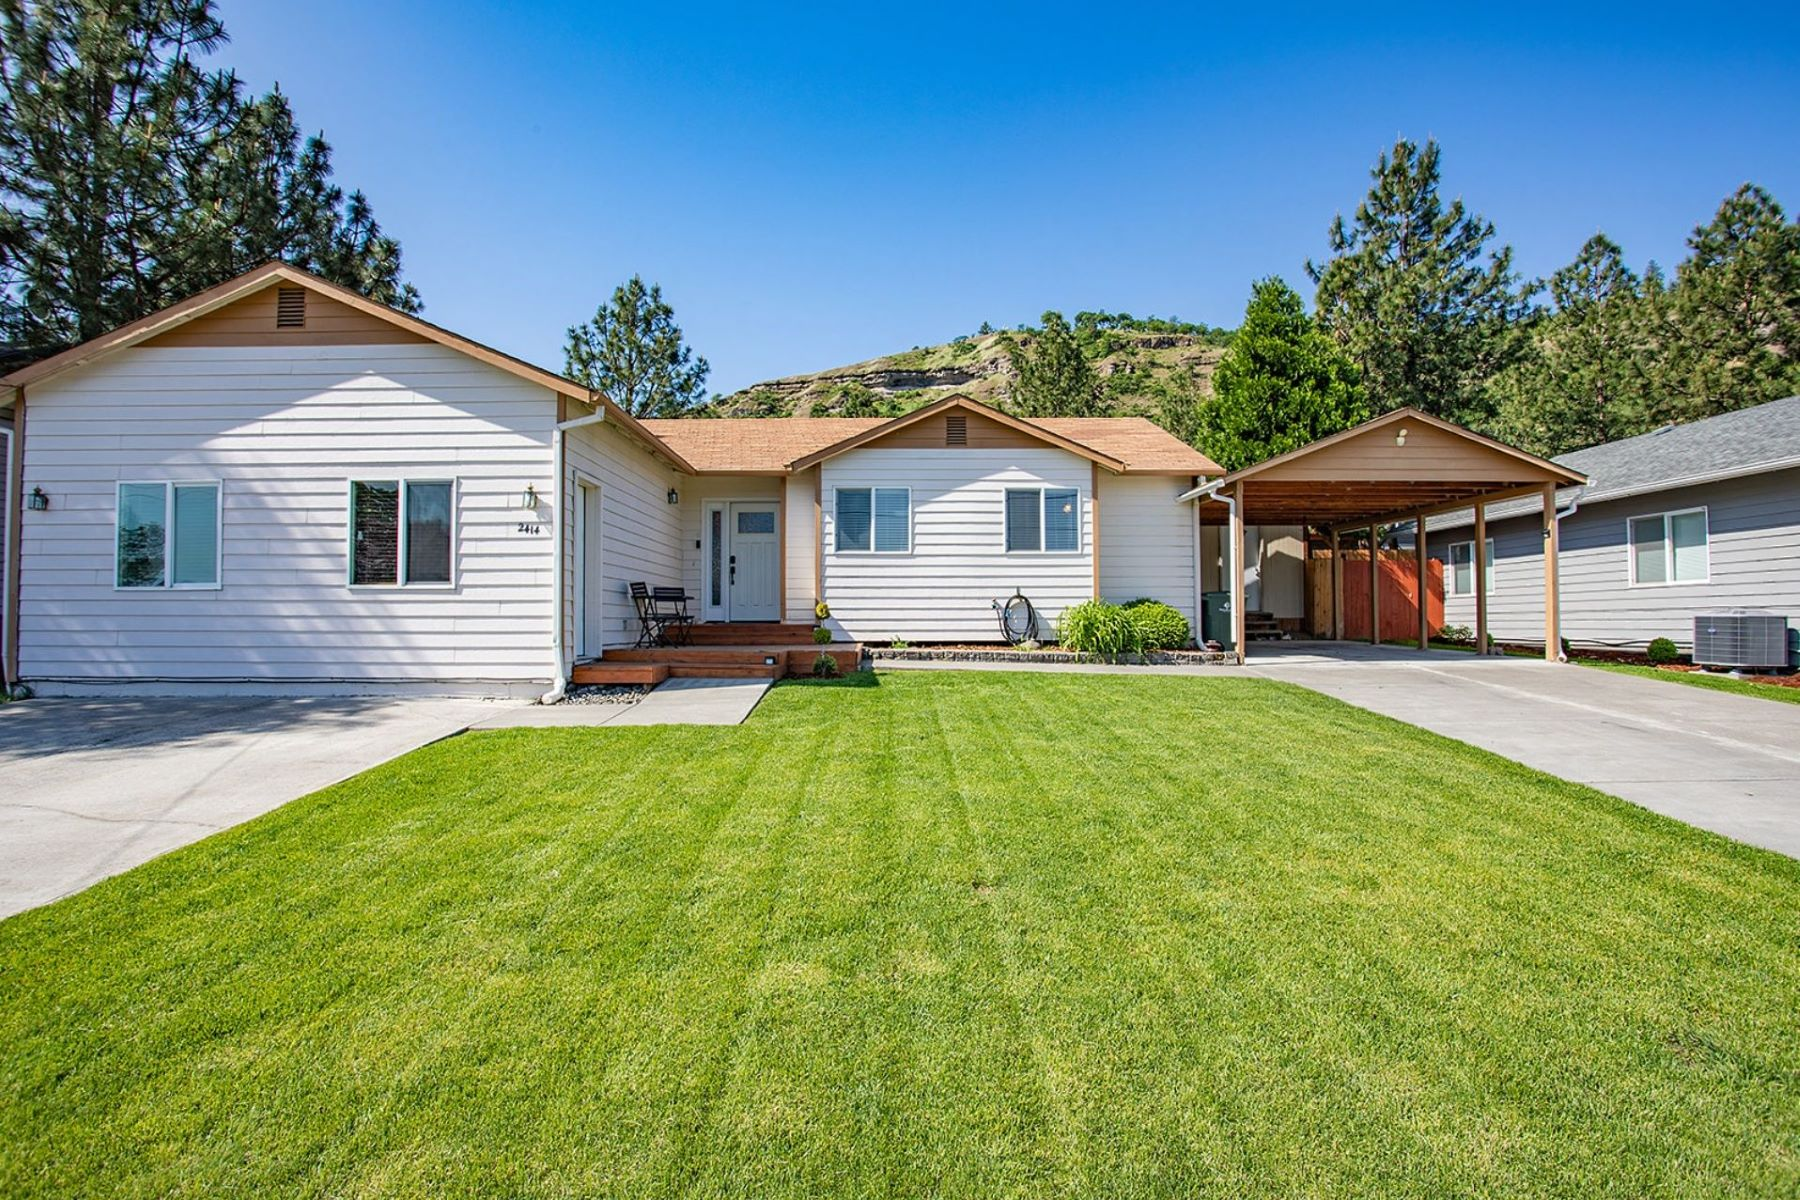 Other Residential Homes for Active at 2414 W 13TH The Dalles, OR 97058 2414 W 13TH The Dalles, Oregon 97058 United States